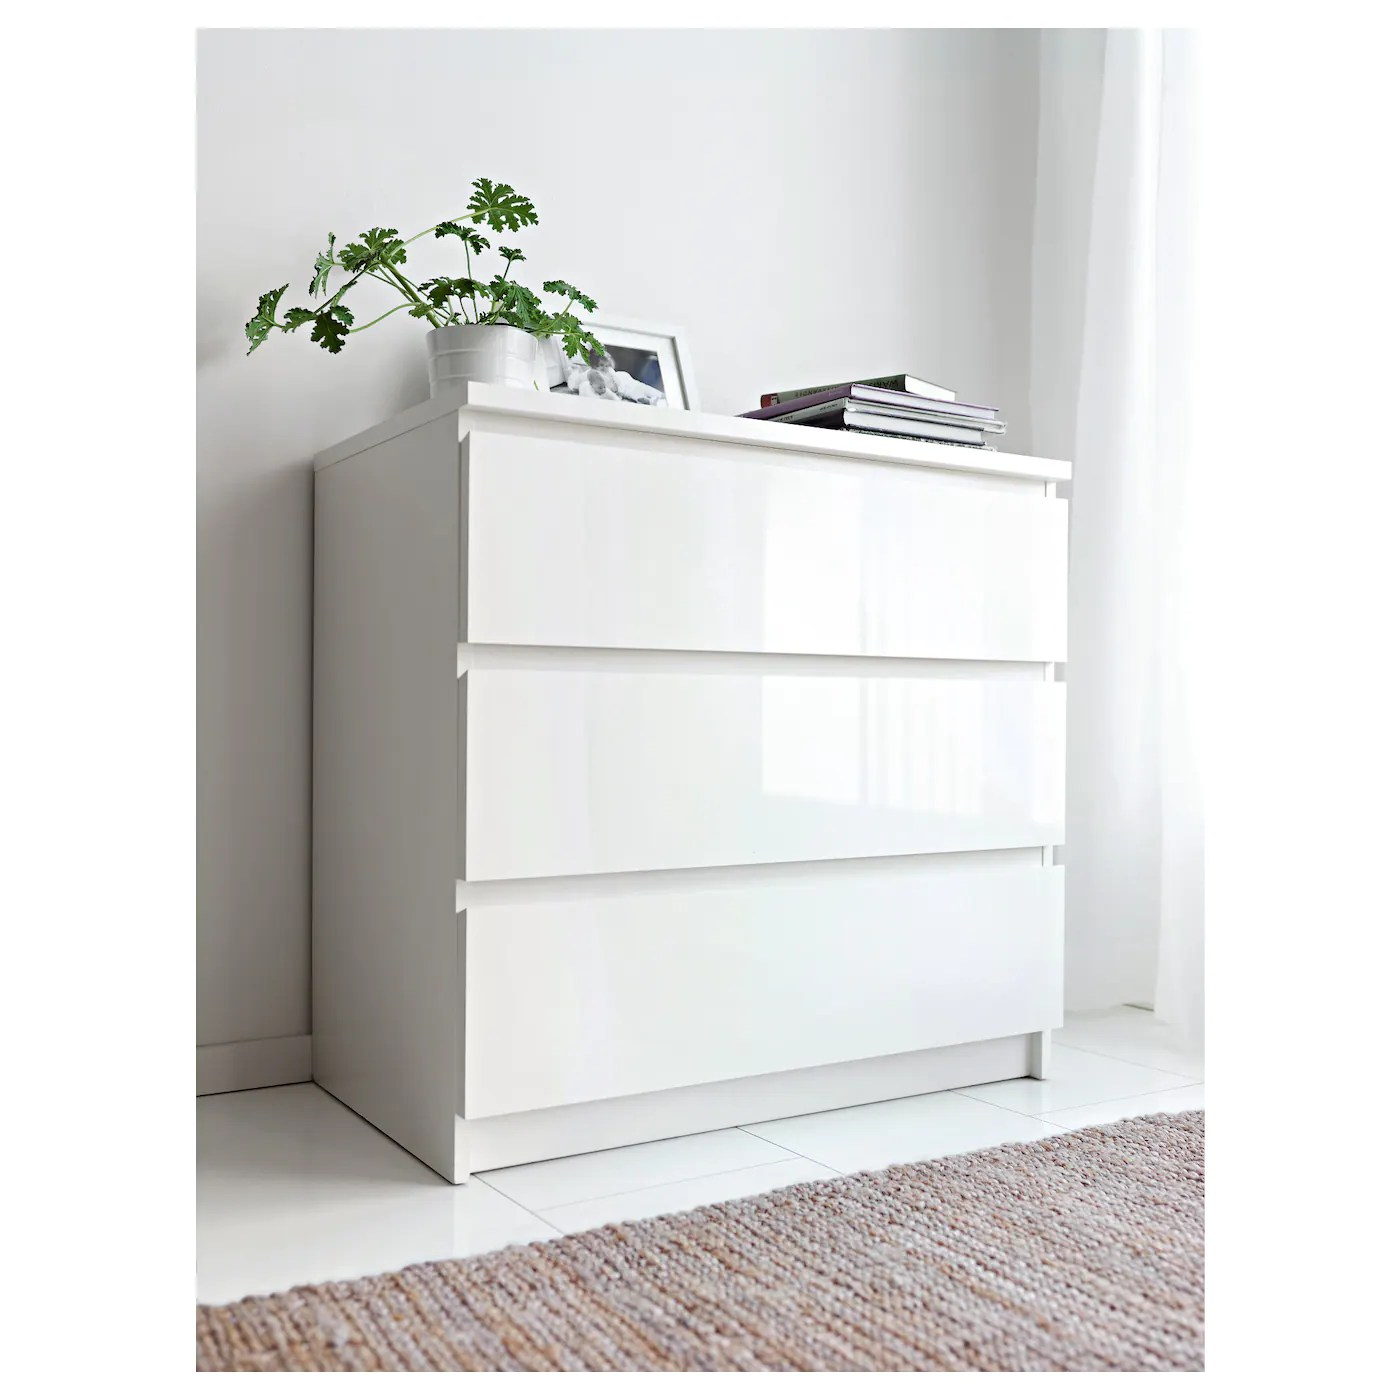 Ikea Commode Blanche Malm Commode 3 Tiroirs Blanc Brillant